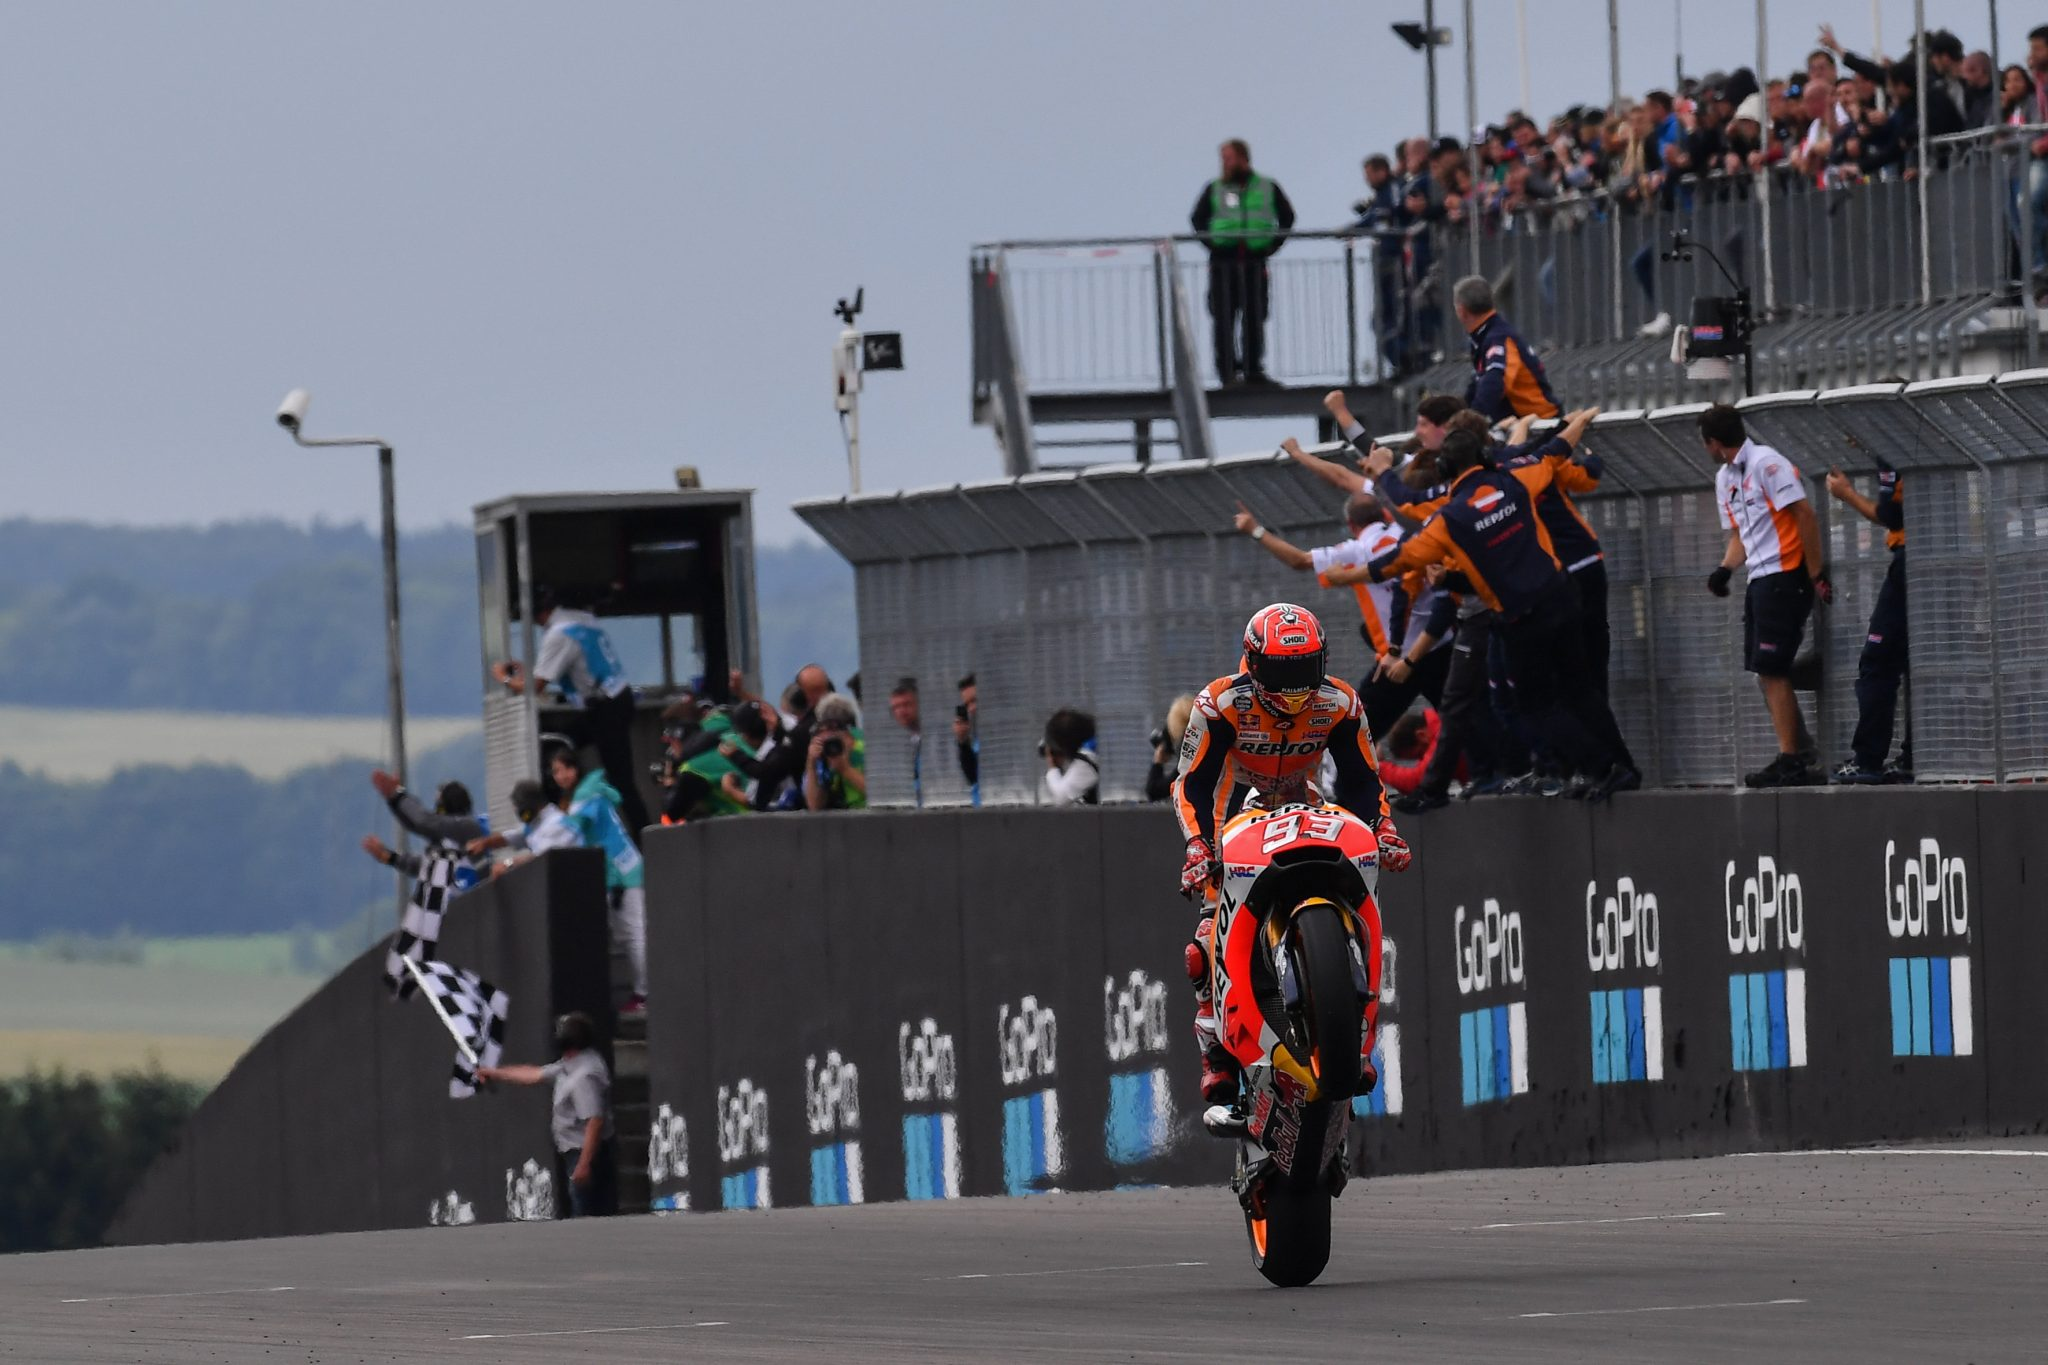 MARQUEZ IS DER KONIG: Wins 8th German GP